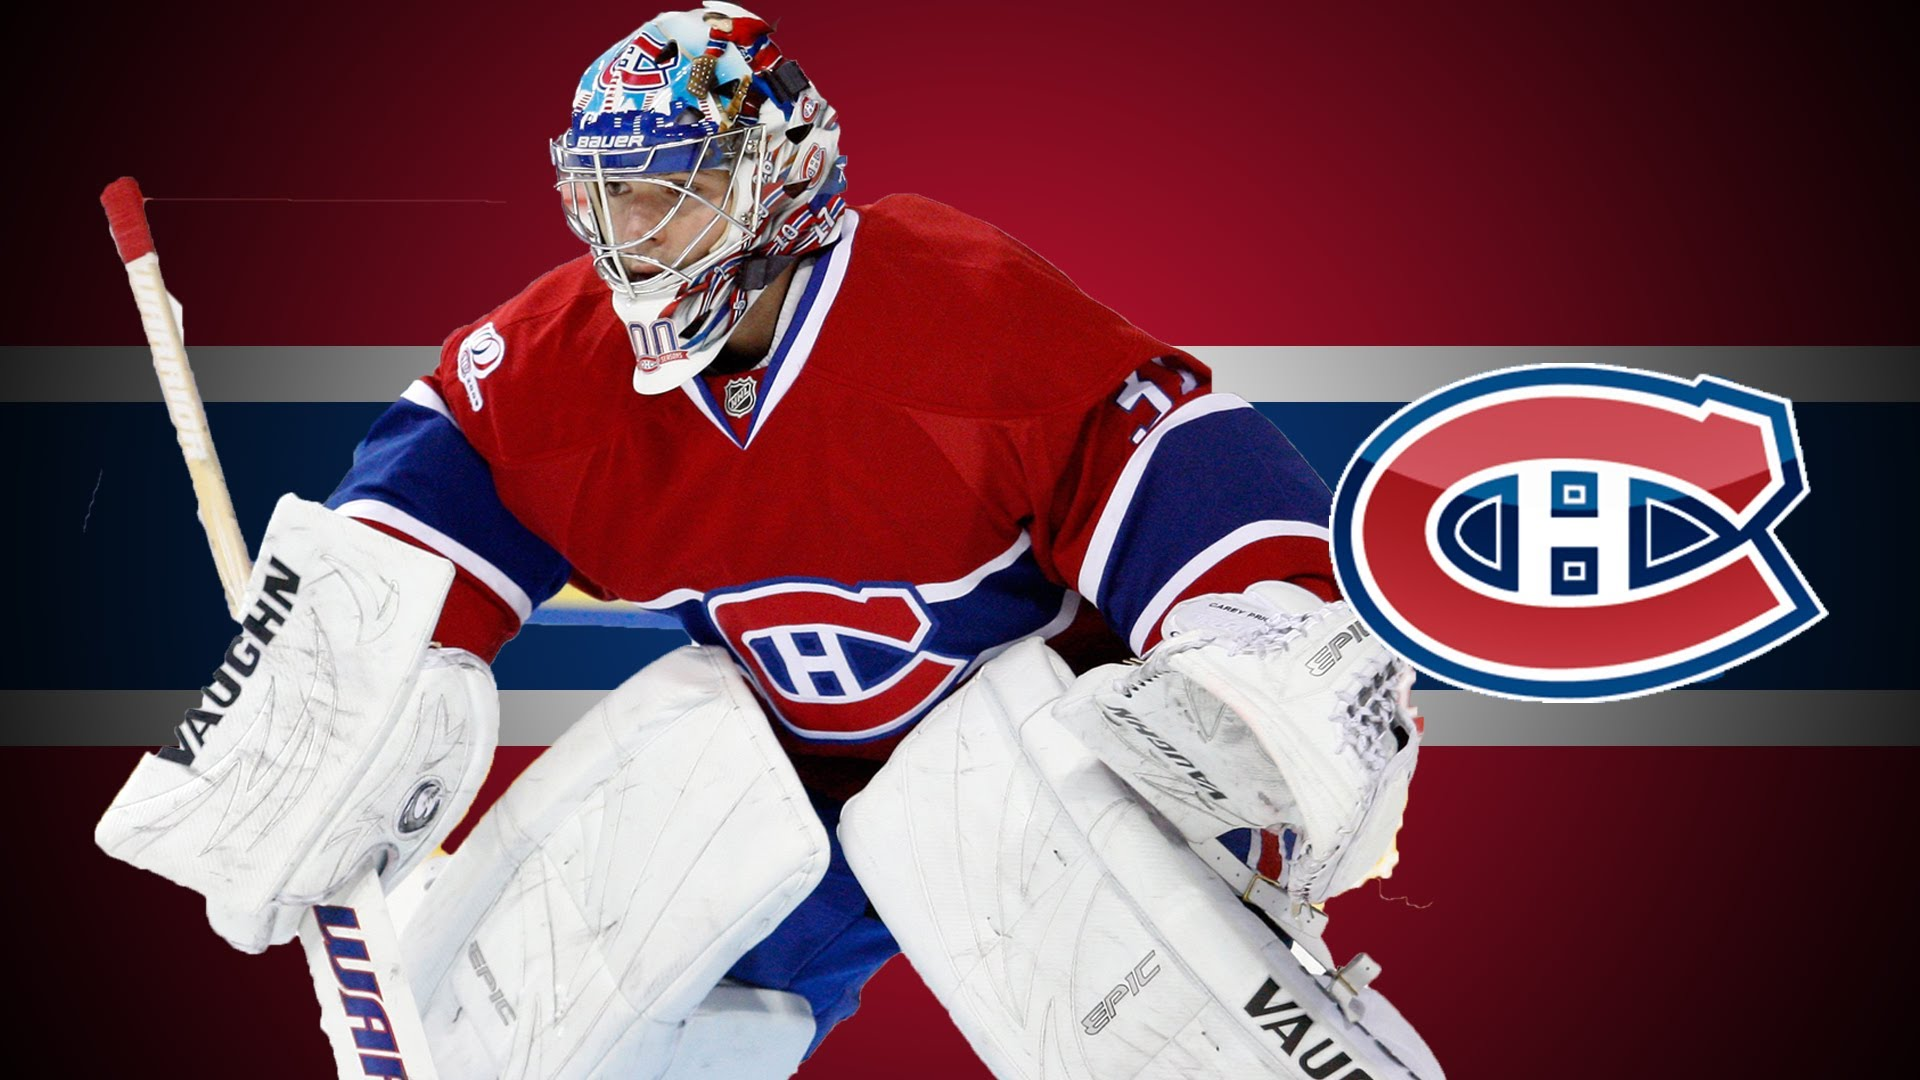 Free Download Pin House Carey Price 2011 Wallpaper 1920x1080 For Your Desktop Mobile Tablet Explore 50 Carey Price Wallpaper Montreal Canadiens Wallpaper Montreal Canadiens Logo Wallpaper Habs Desktop Wallpaper